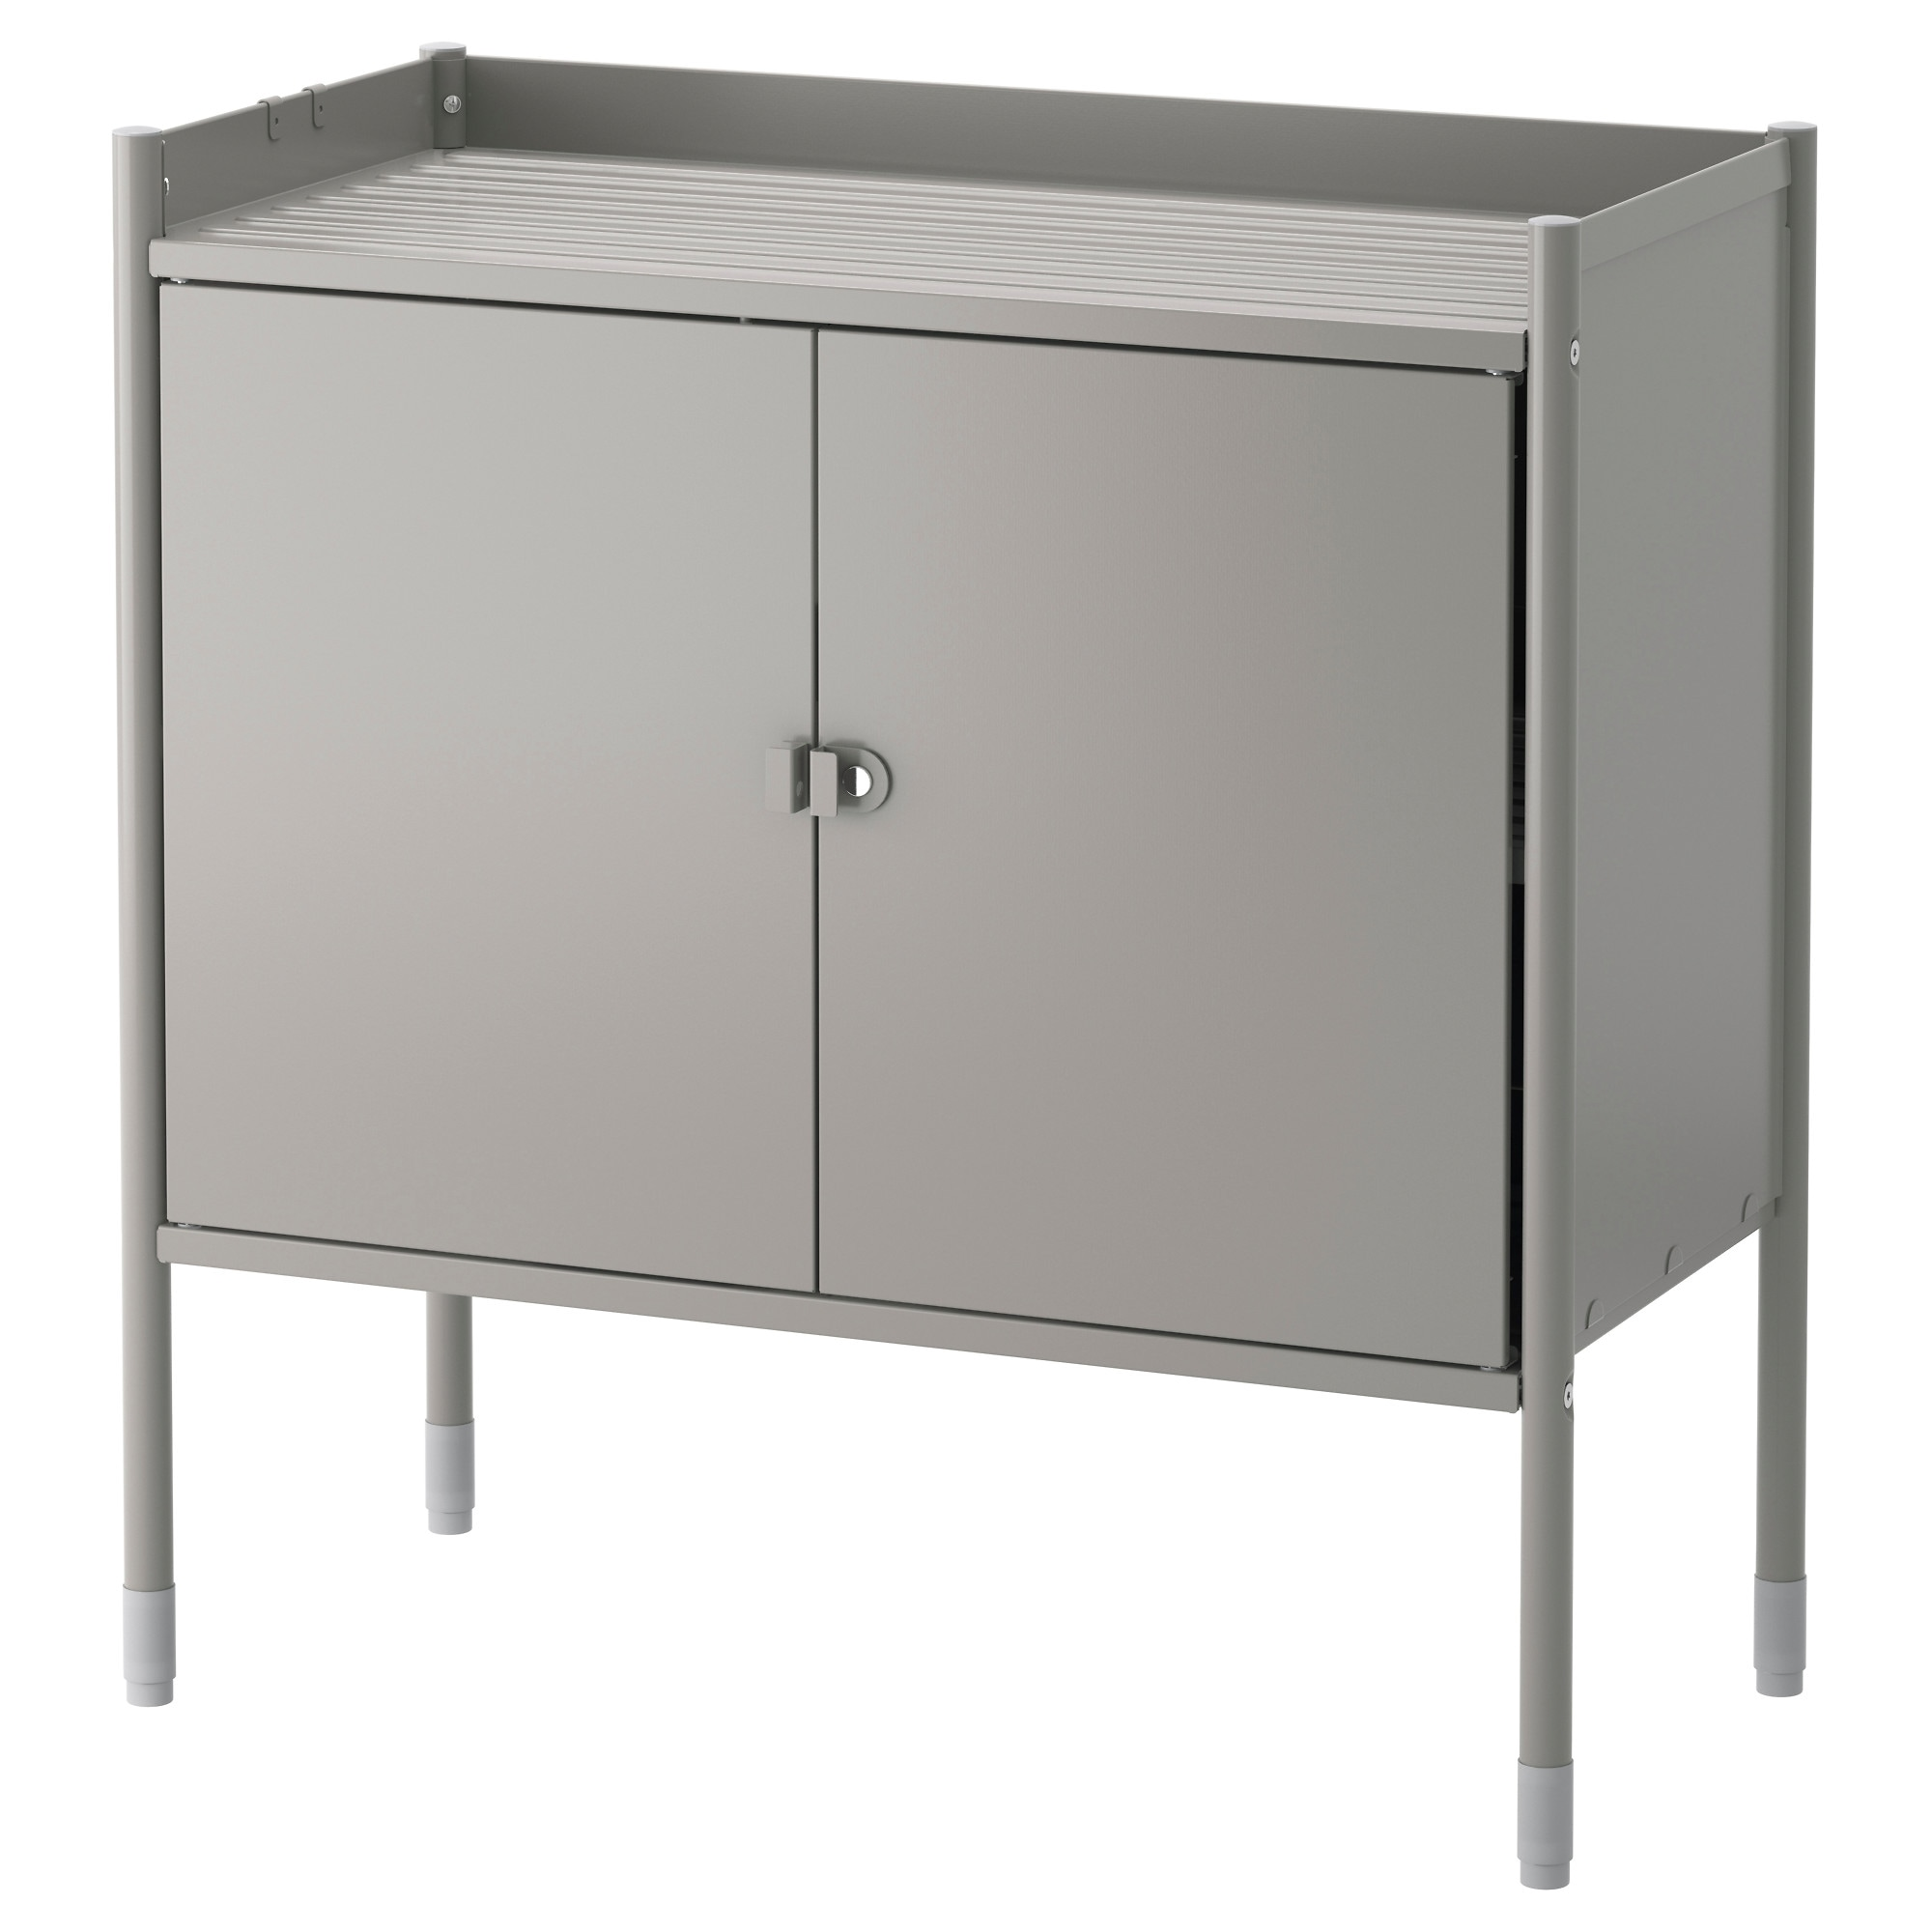 HIND– Cabinet indoor outdoor IKEA